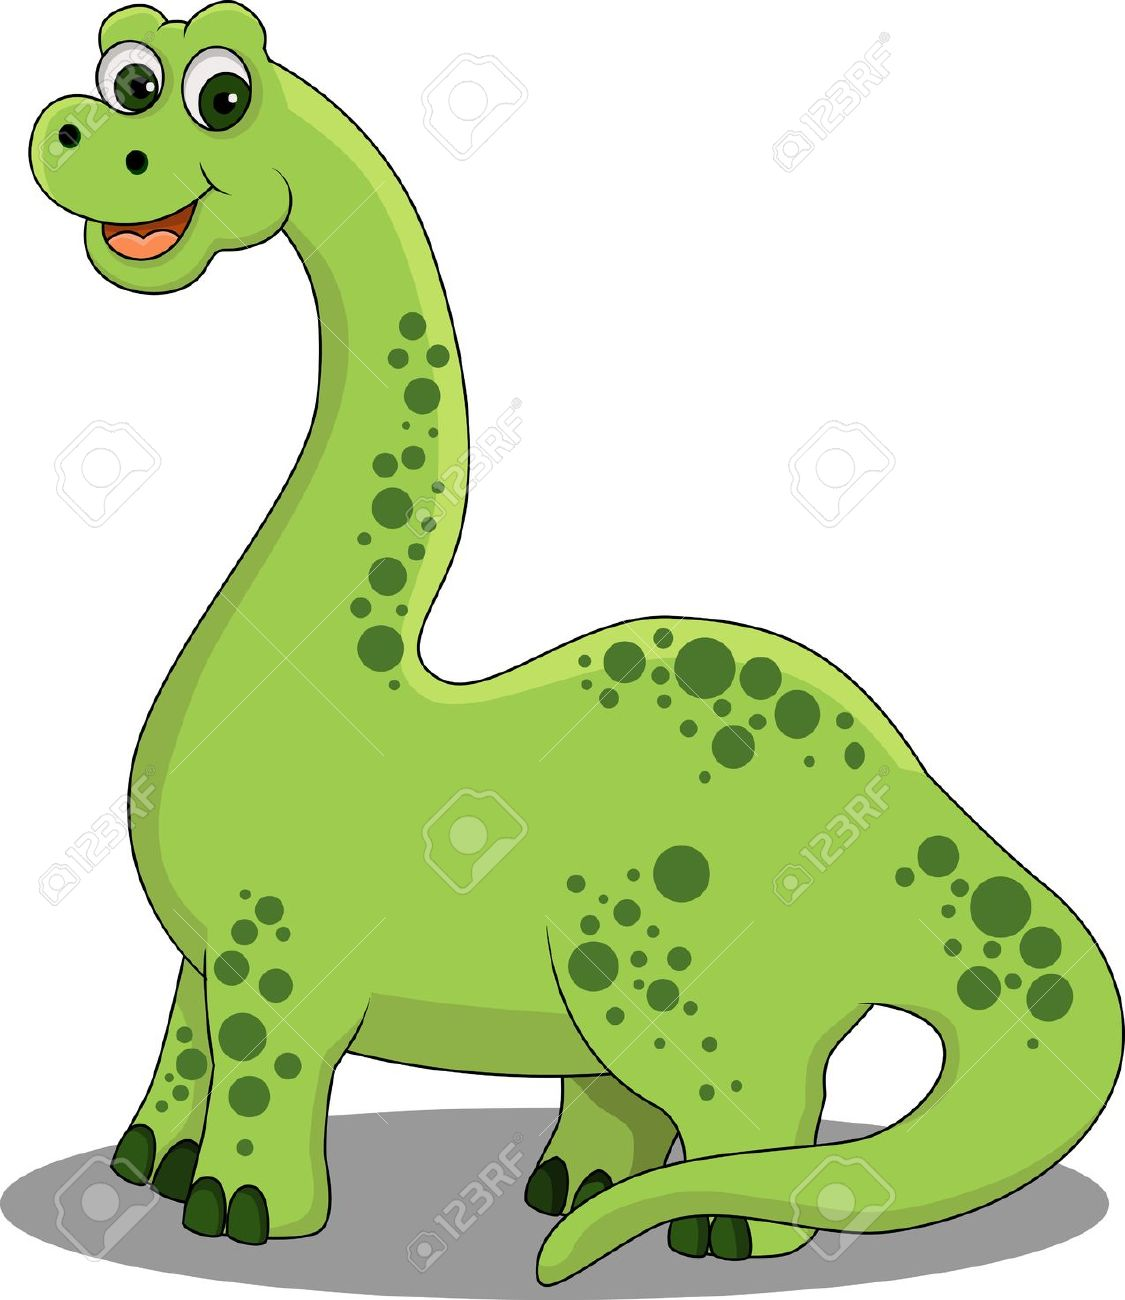 1125x1300 Collection Of Herbivore Dinosaur Clipart High Quality, Free